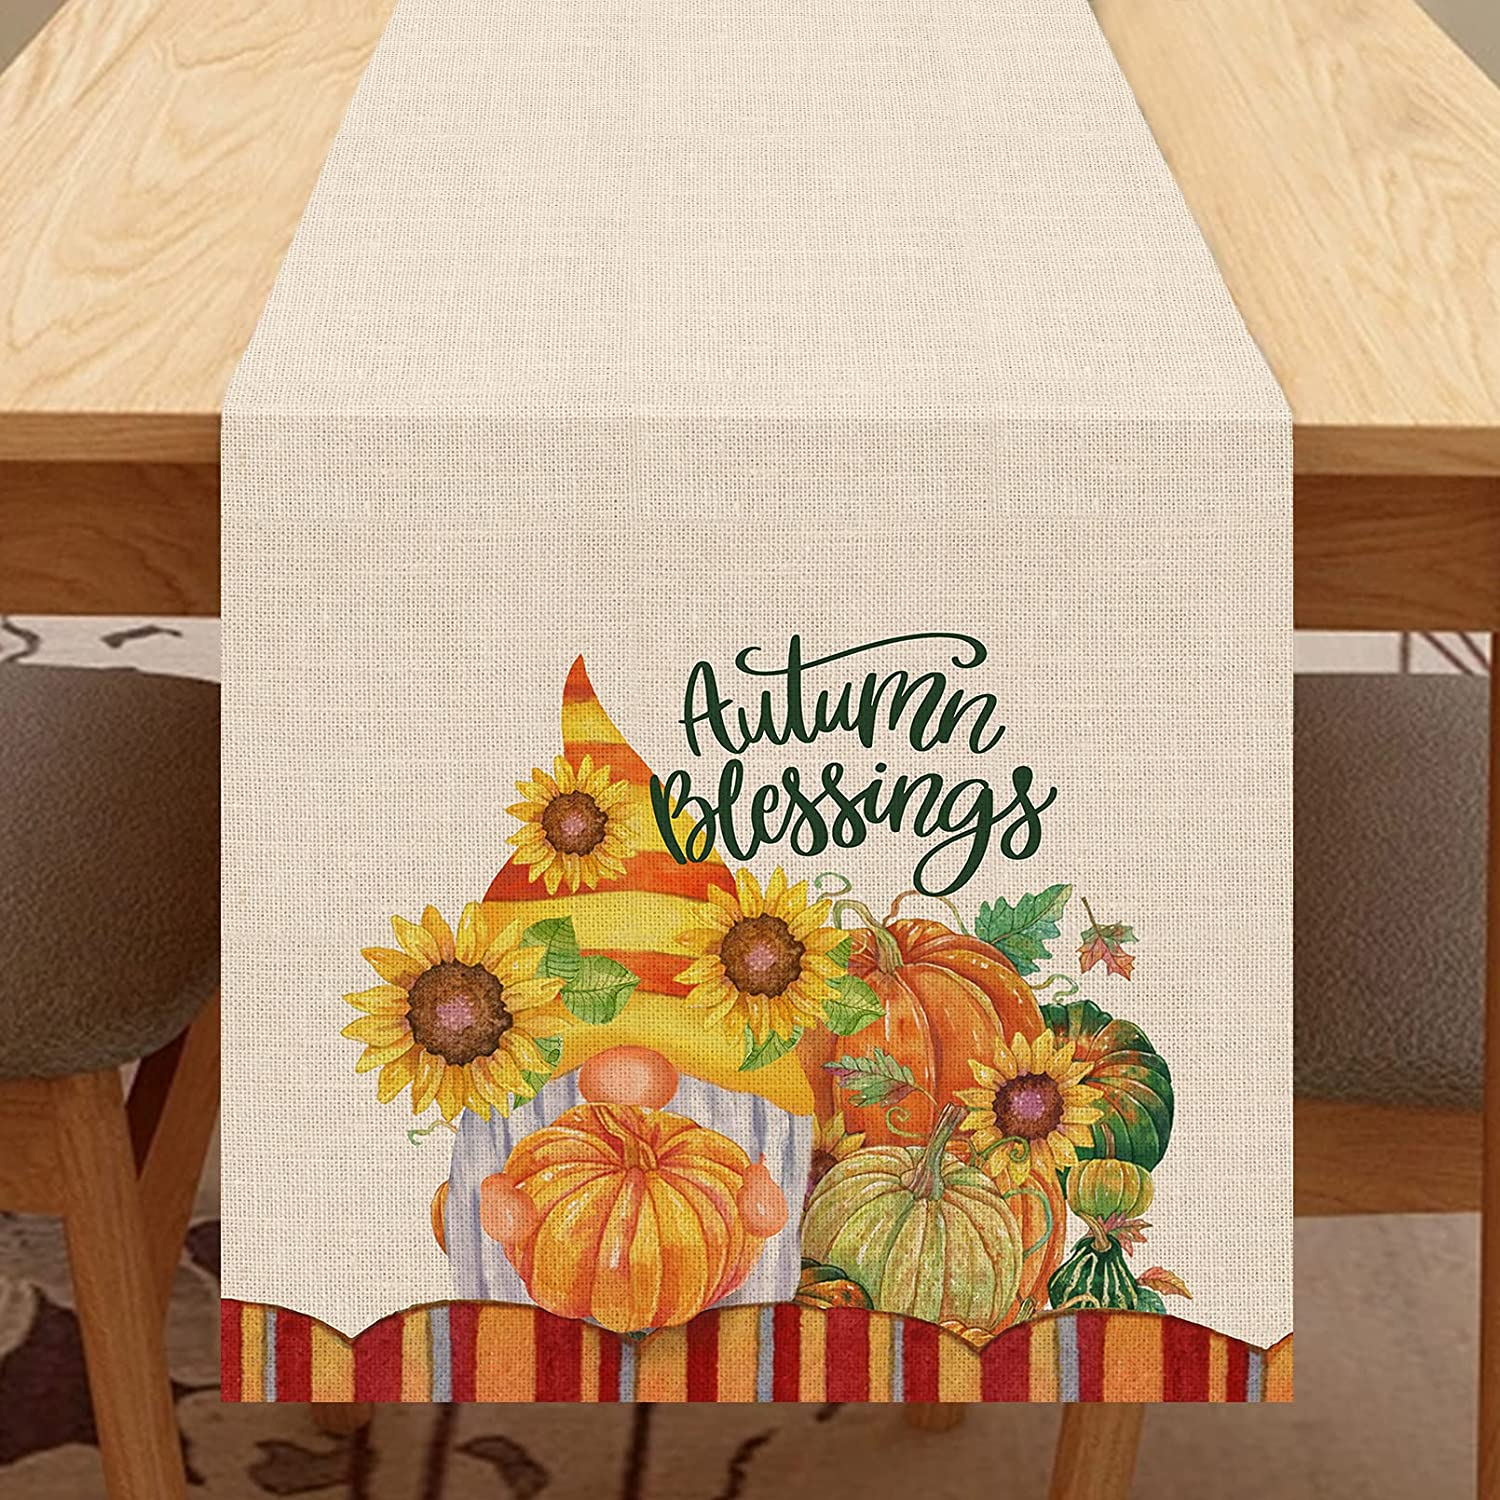 Seliem Autumn Blessings Pumpkin Patch Table Runner, Fall Gnome Table Scarf Home Kitchen Red Orange Sunflower Decor Sign, Seasonal Farmhouse Rustic Burlap Outdoor Dining Decoration Party Supply 13X72